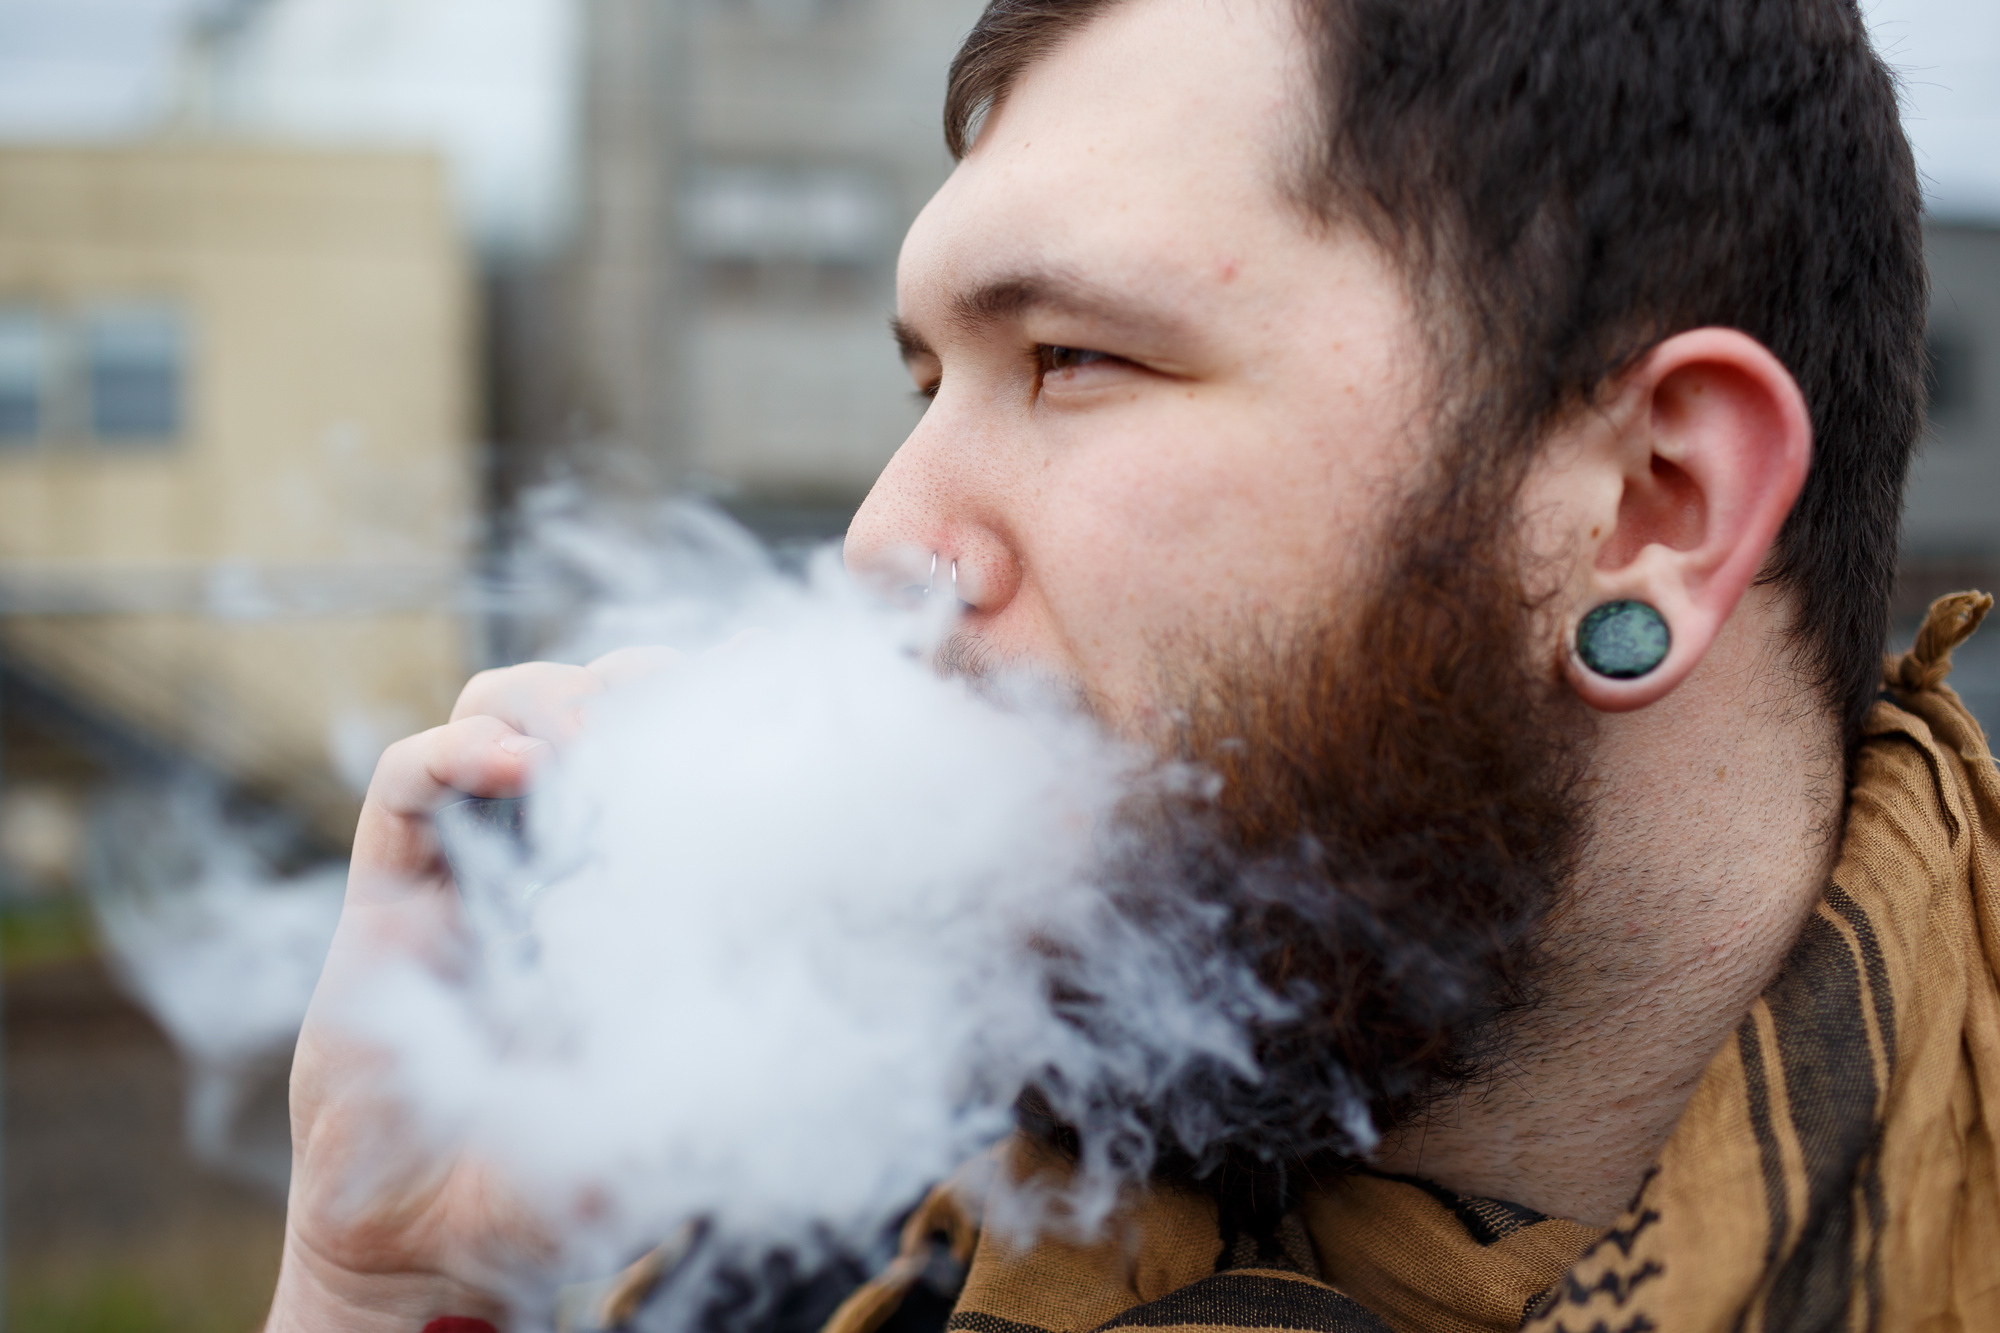 What is a vape atomizer, you might ask? Learn more for yourself about the functions and purpose of a vape atomizer here.